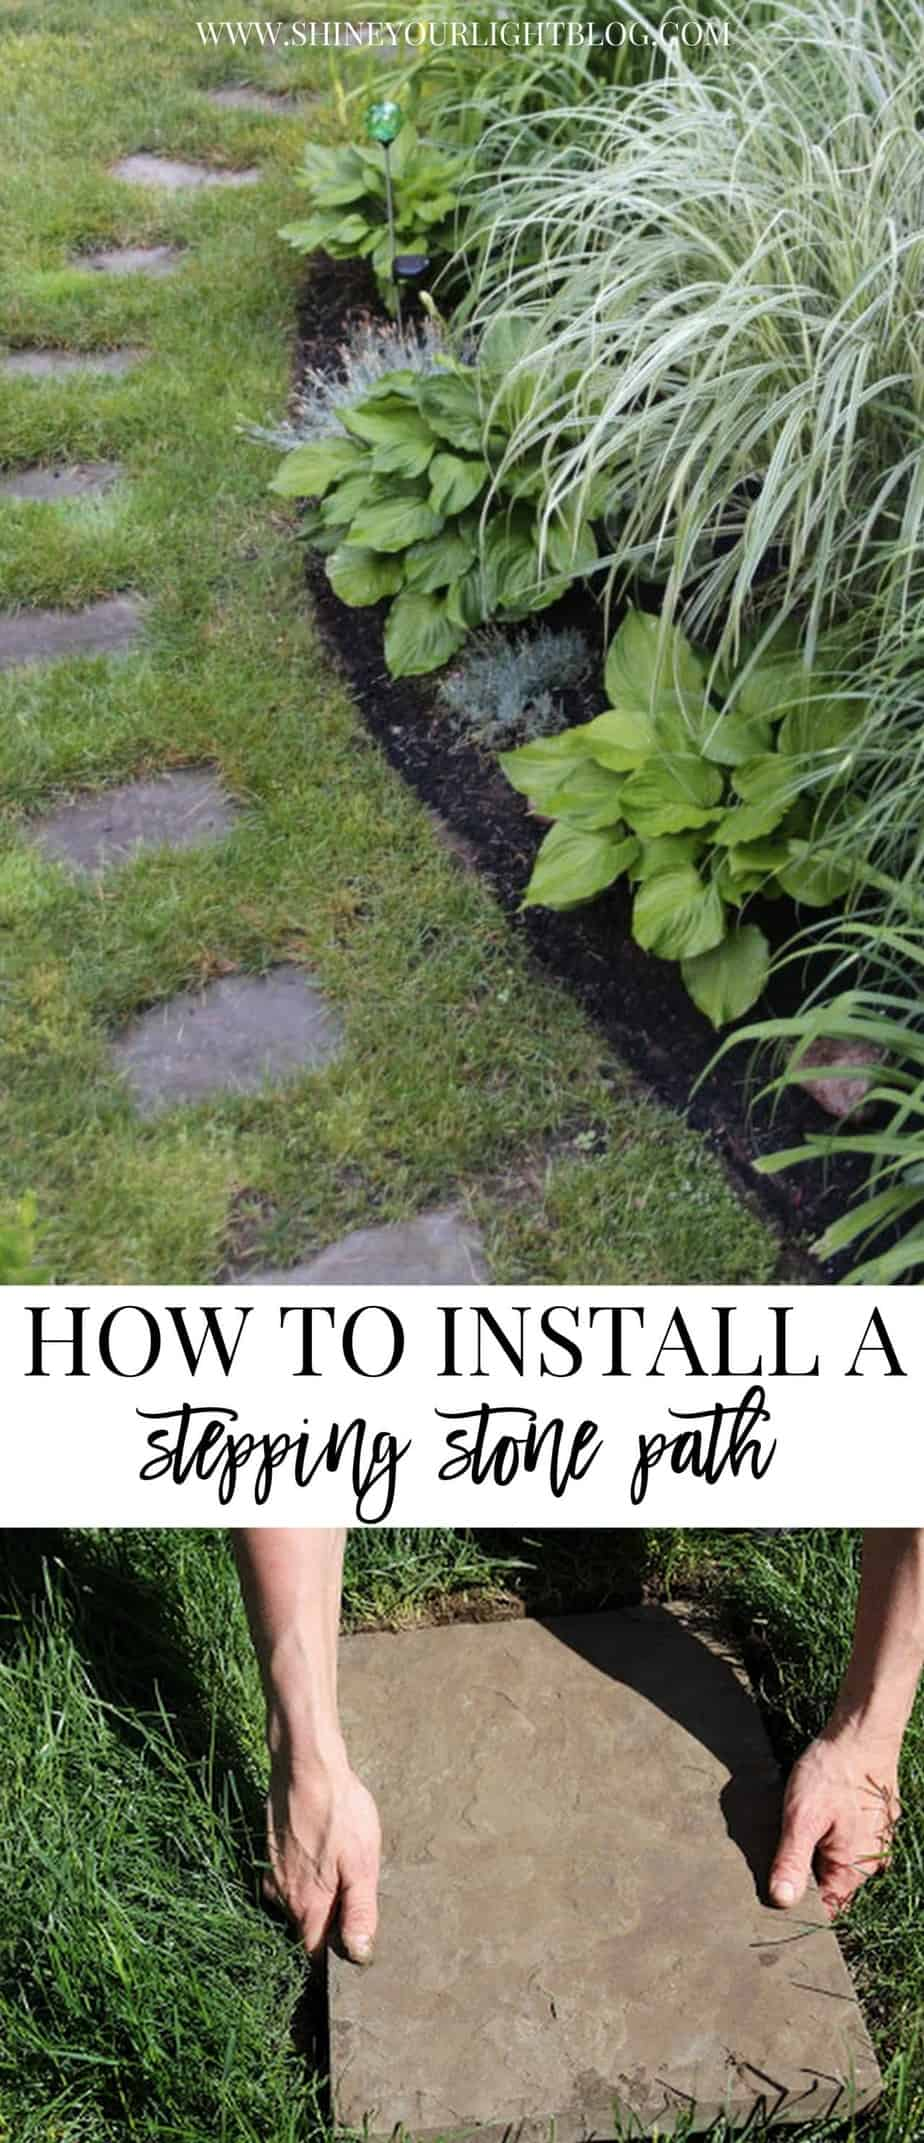 Install Stepping Stone Path